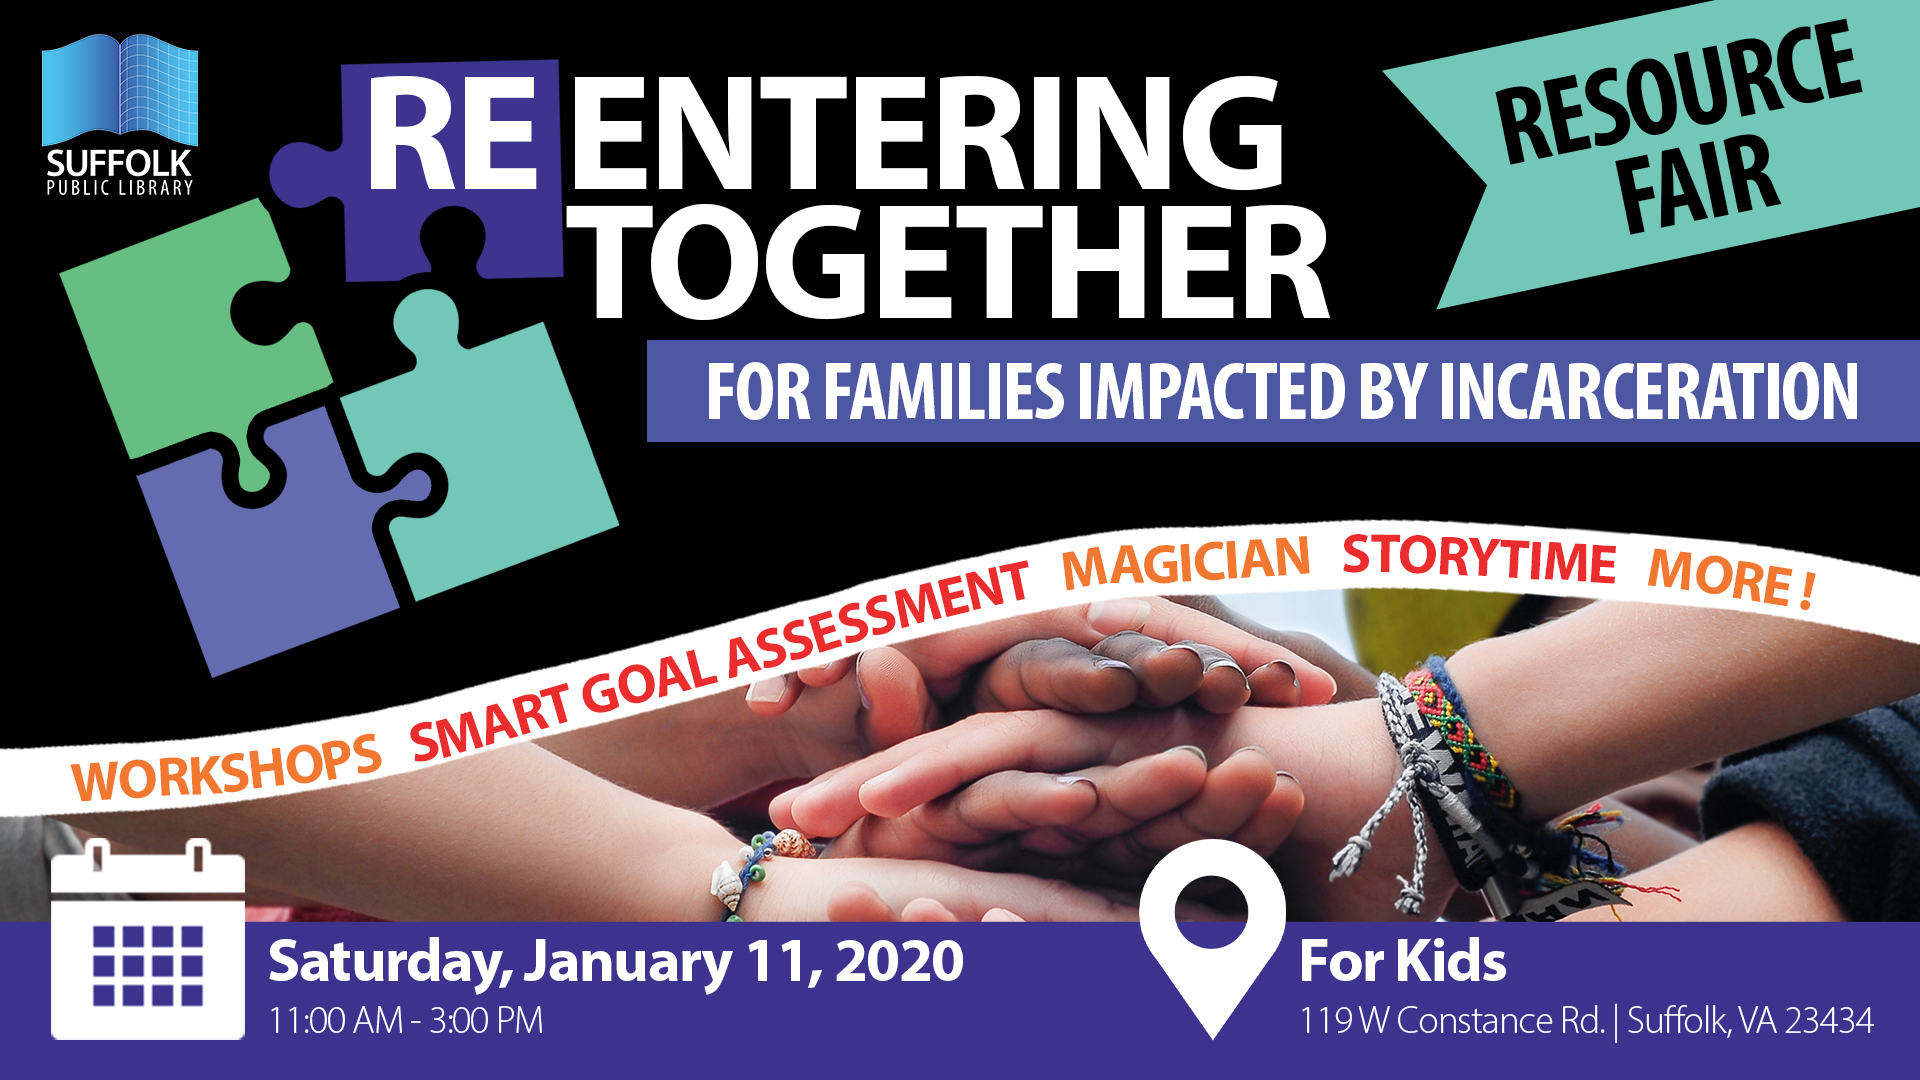 Reentering Together: A Resource Fair for Families Impacted By Incarceration